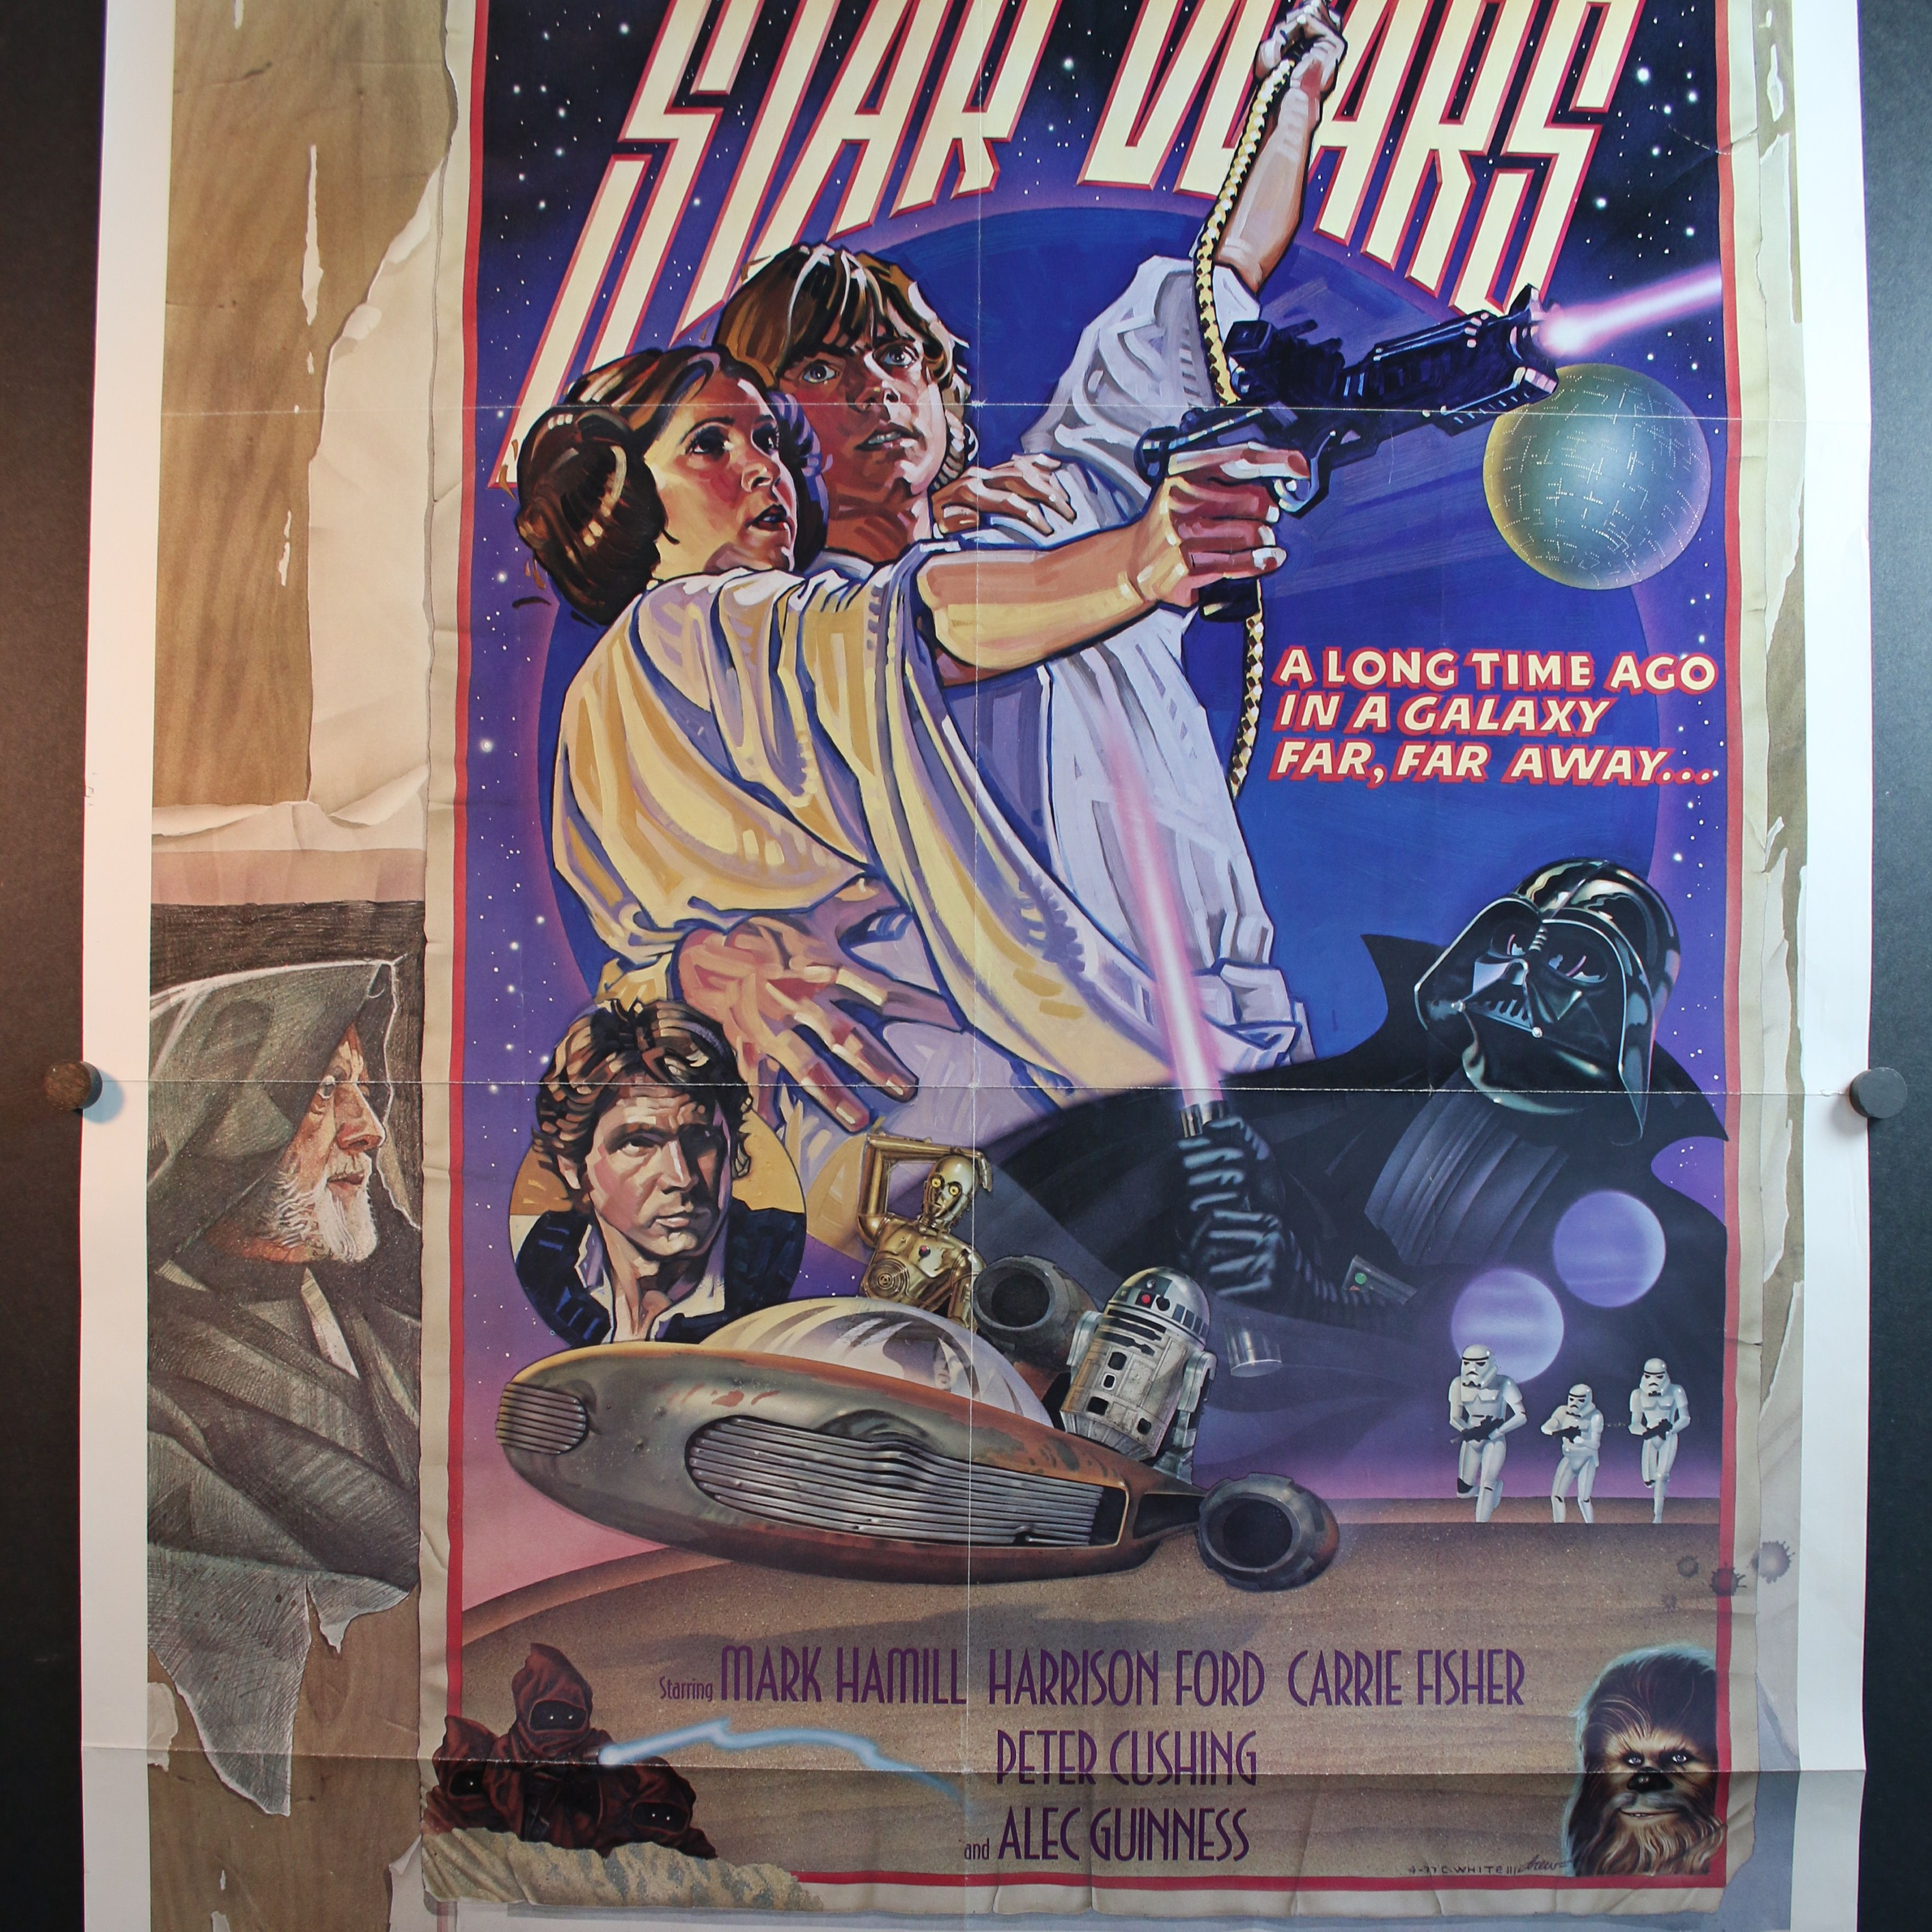 Pin by Betsy Proctor on Star Wars posters | Star wars poster